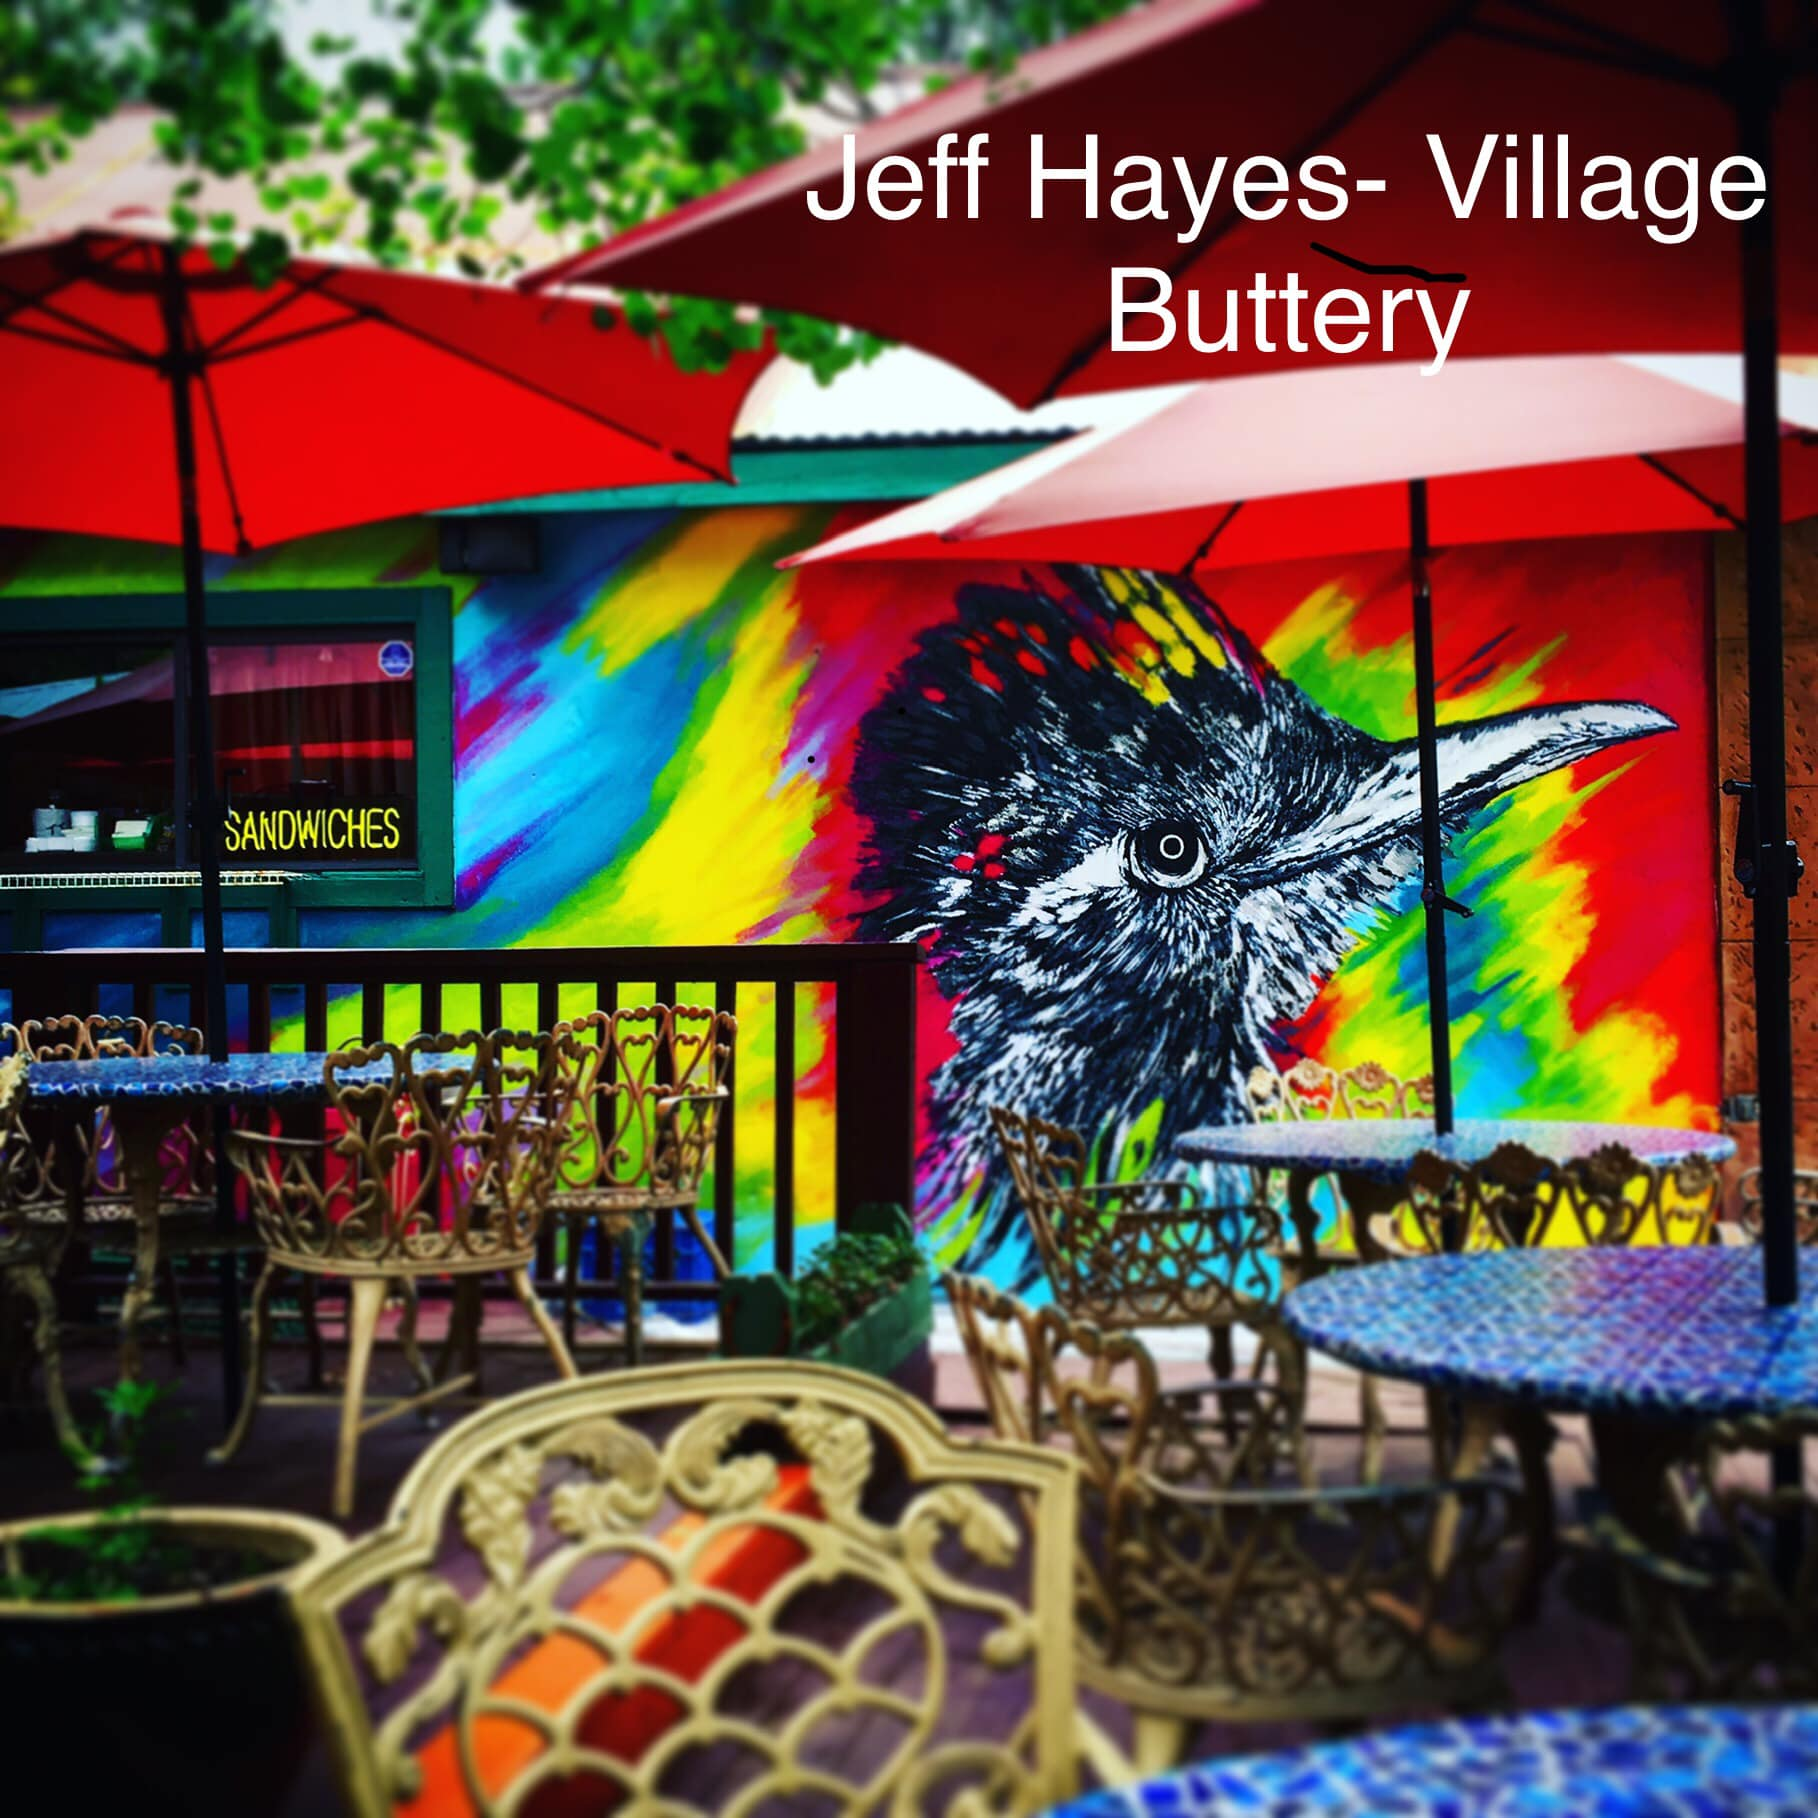 Photo: Mural at The Village Buttery